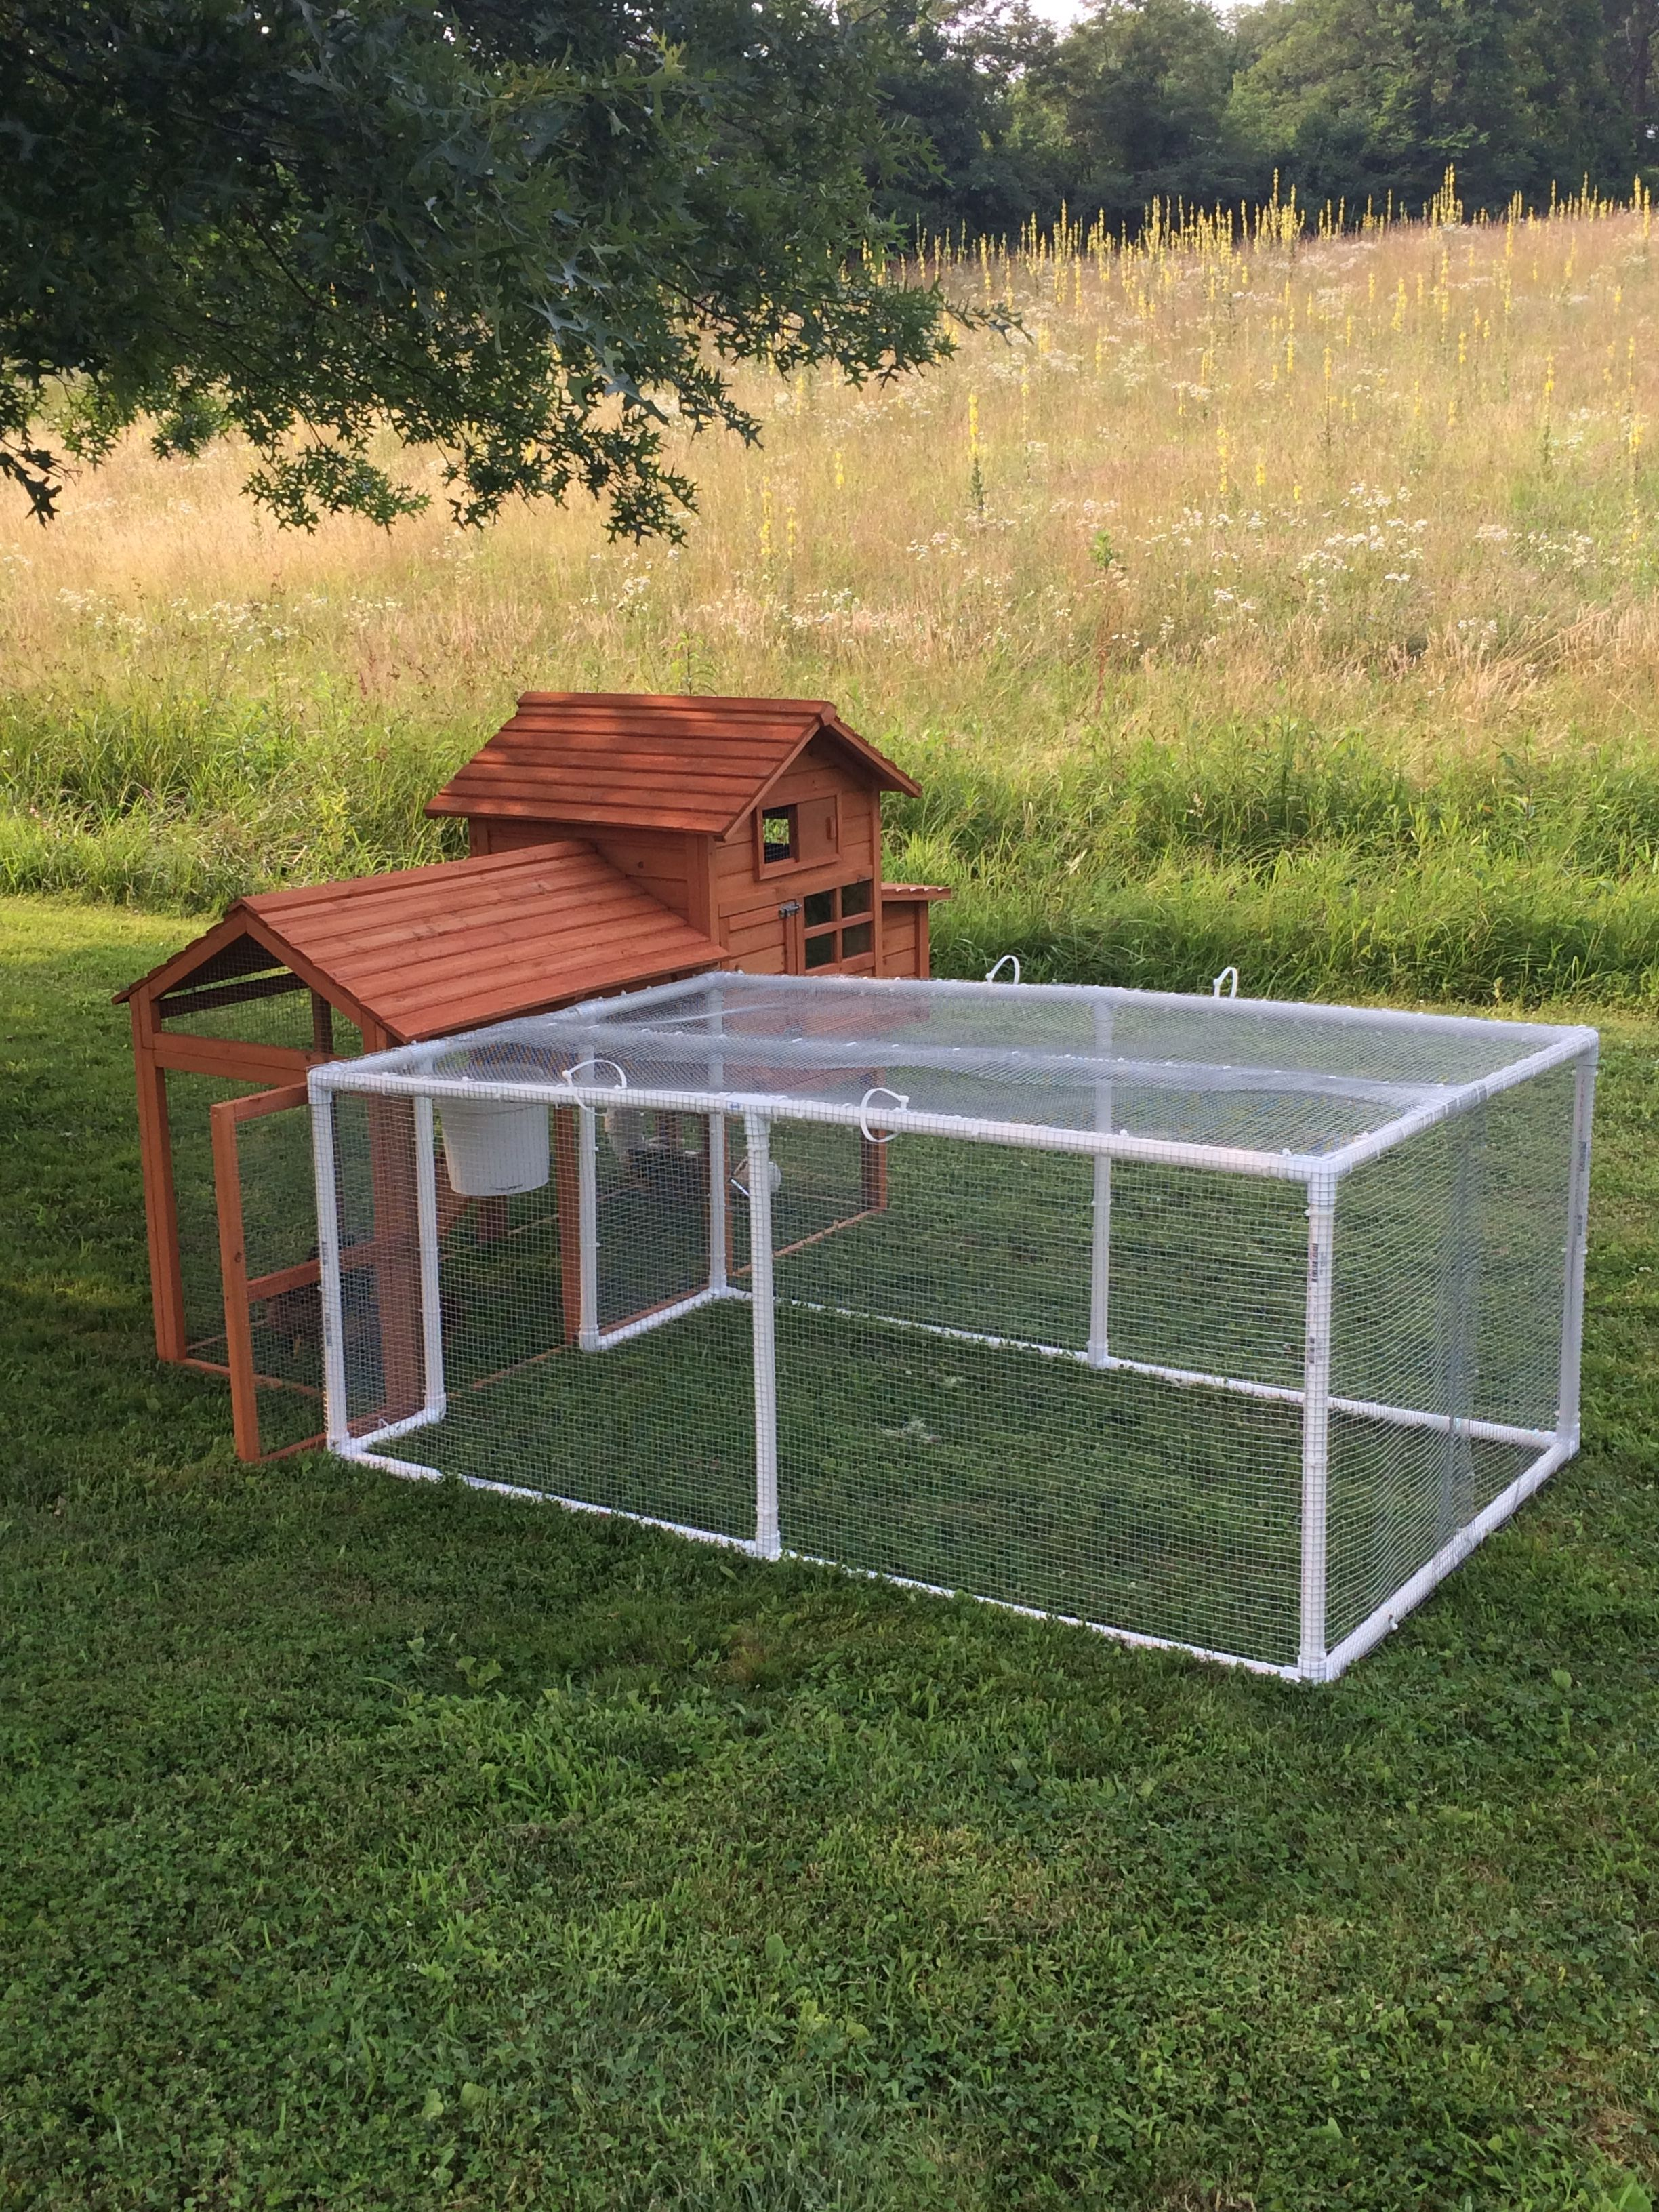 how to build a chicken coop with pvc pipe